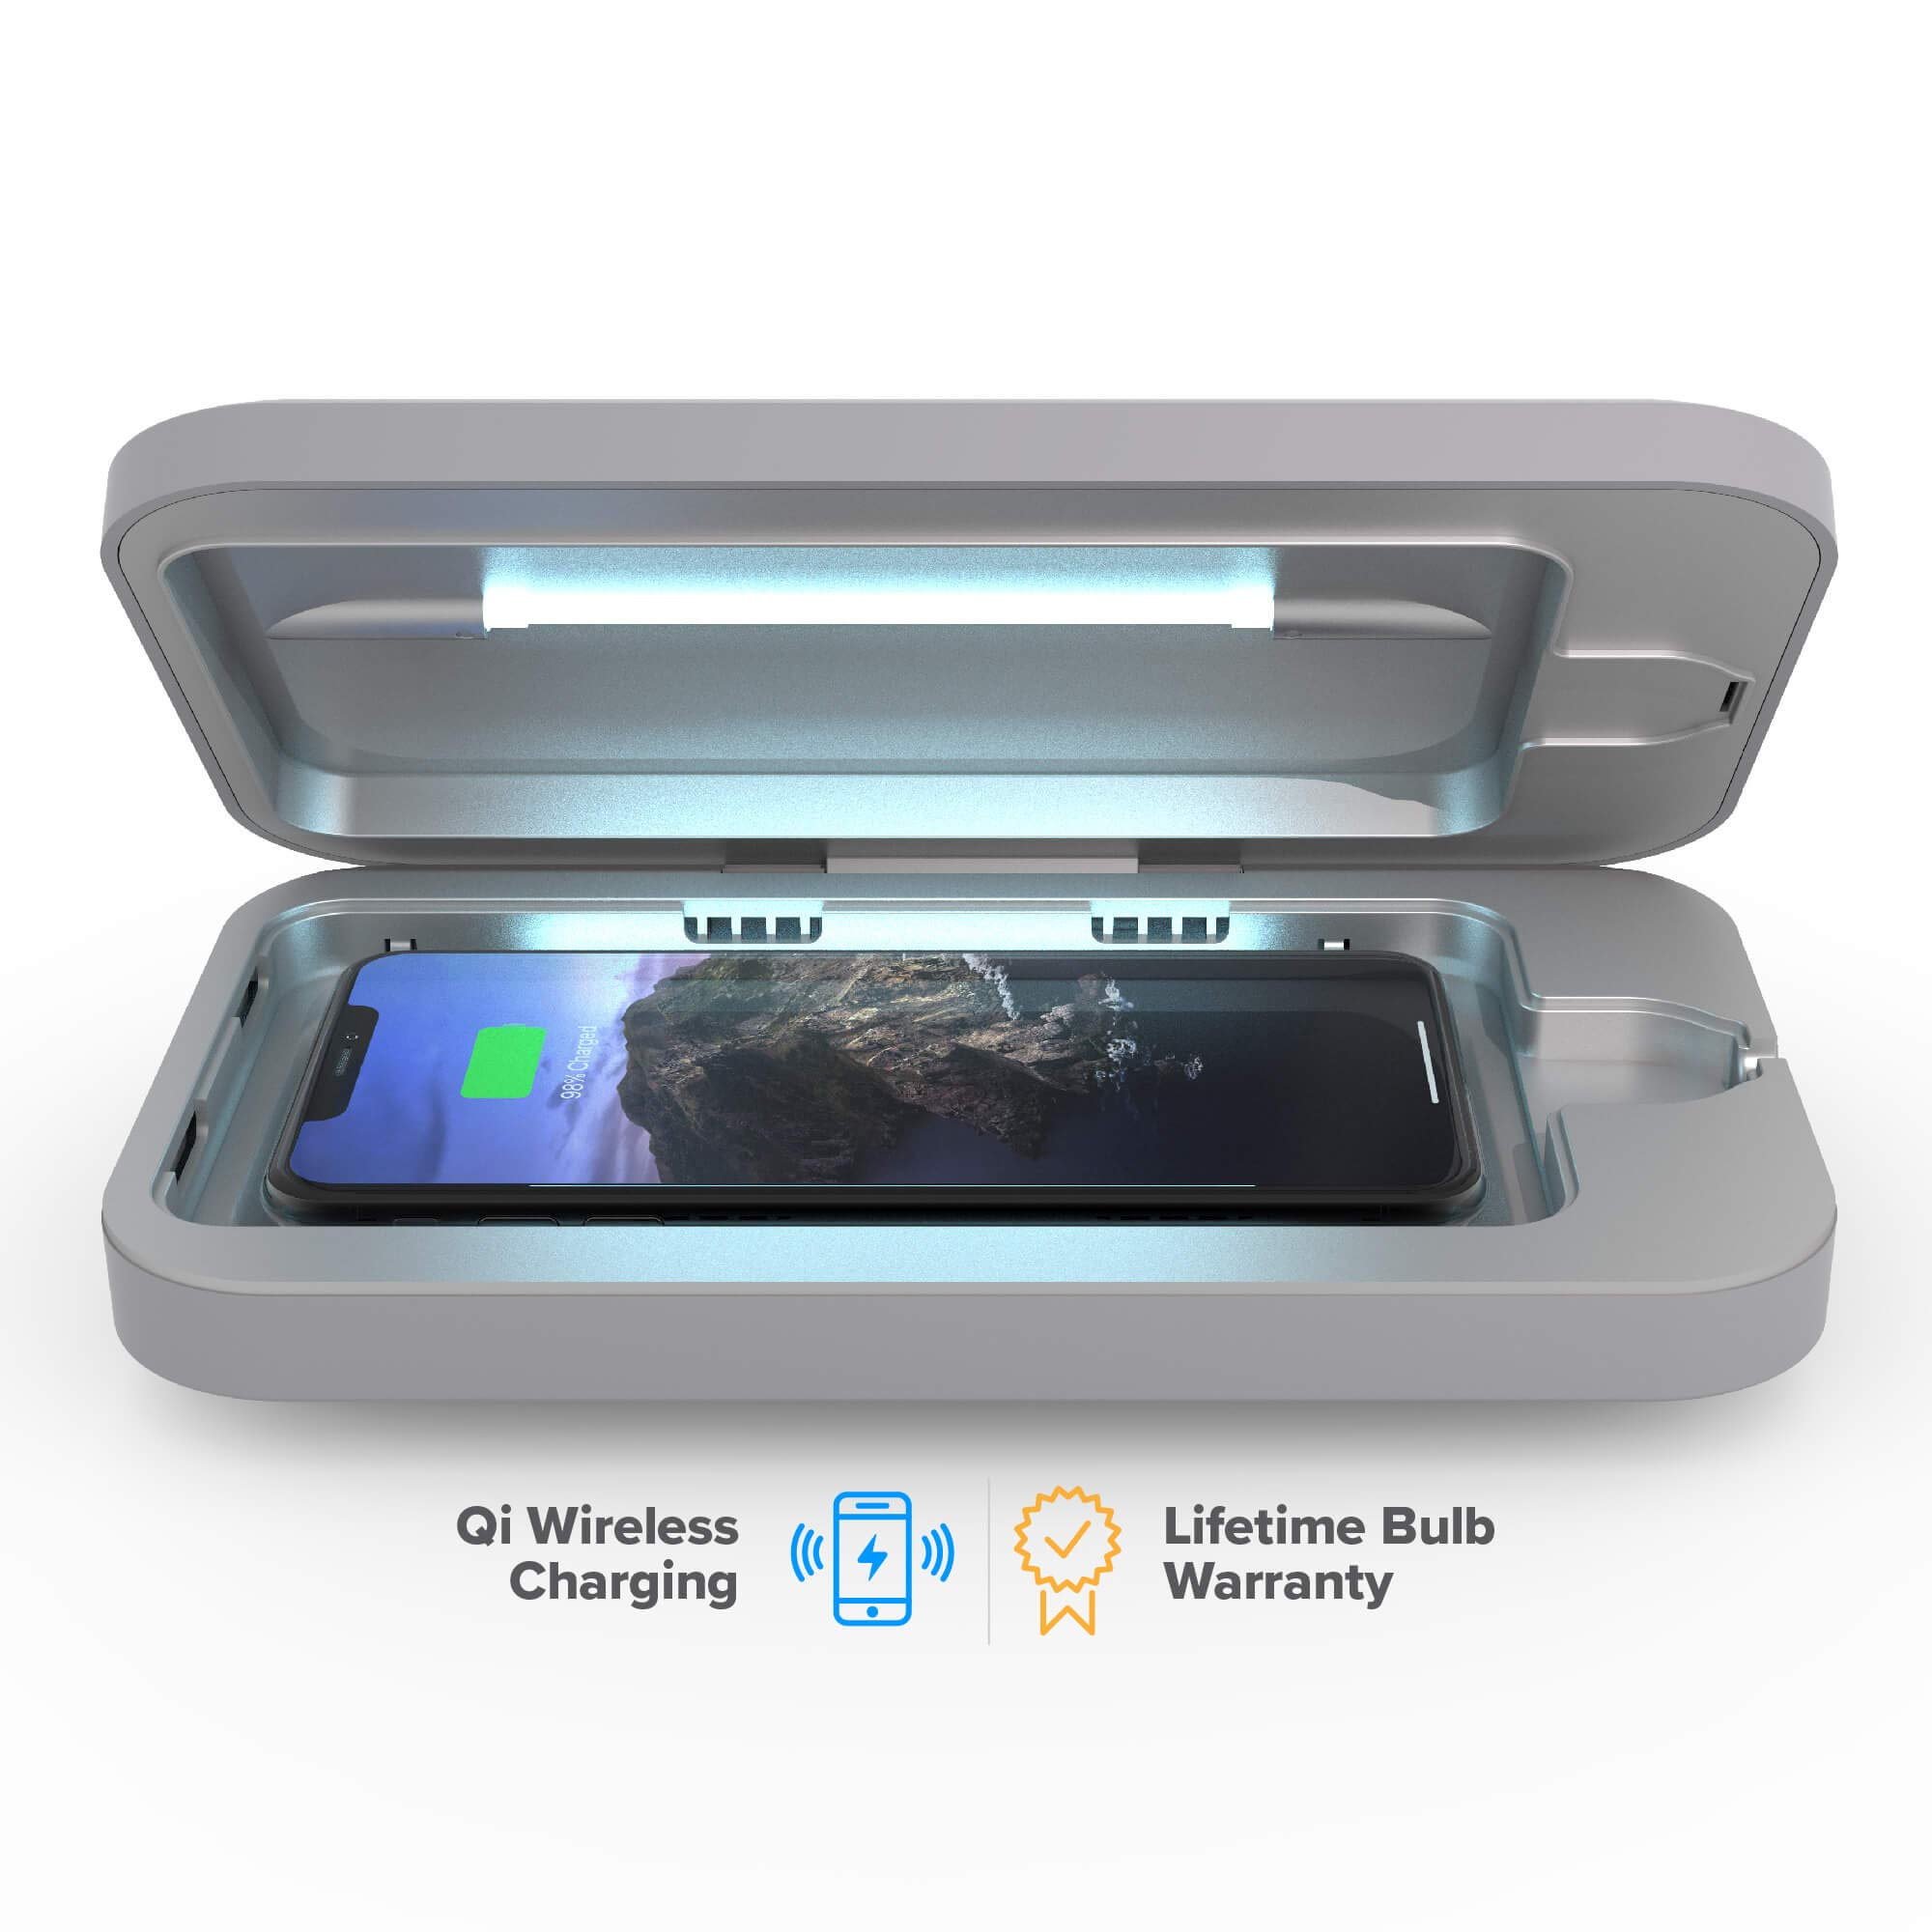 PhoneSoap Wireless UV Smartphone Sanitizer & Qi Charger   Patented & Clinically Proven UV Light Disinfector   (Gunmetal Gray) by PhoneSoap